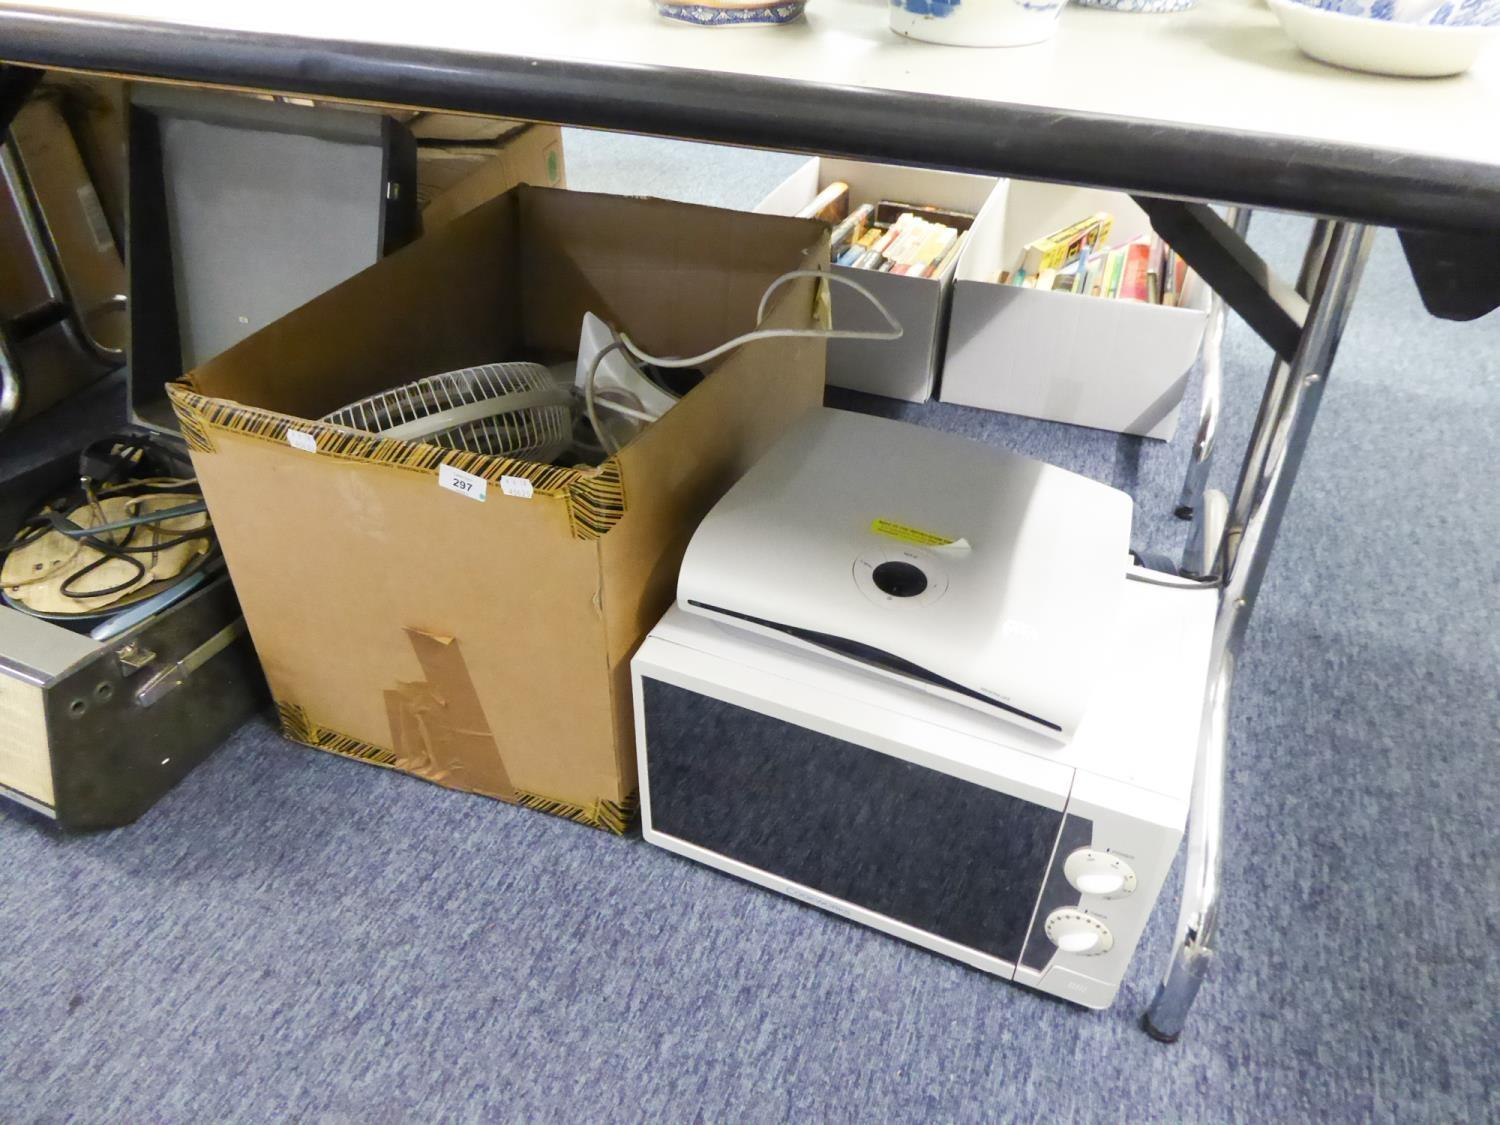 Lot 297 - 'COOKWORKS' MICROWAVE OVEN, RUSSELL HOBBS ELECTRIC TOASTER, QUEST JUG KETTLE, SUPA LEC STEAM IRON,